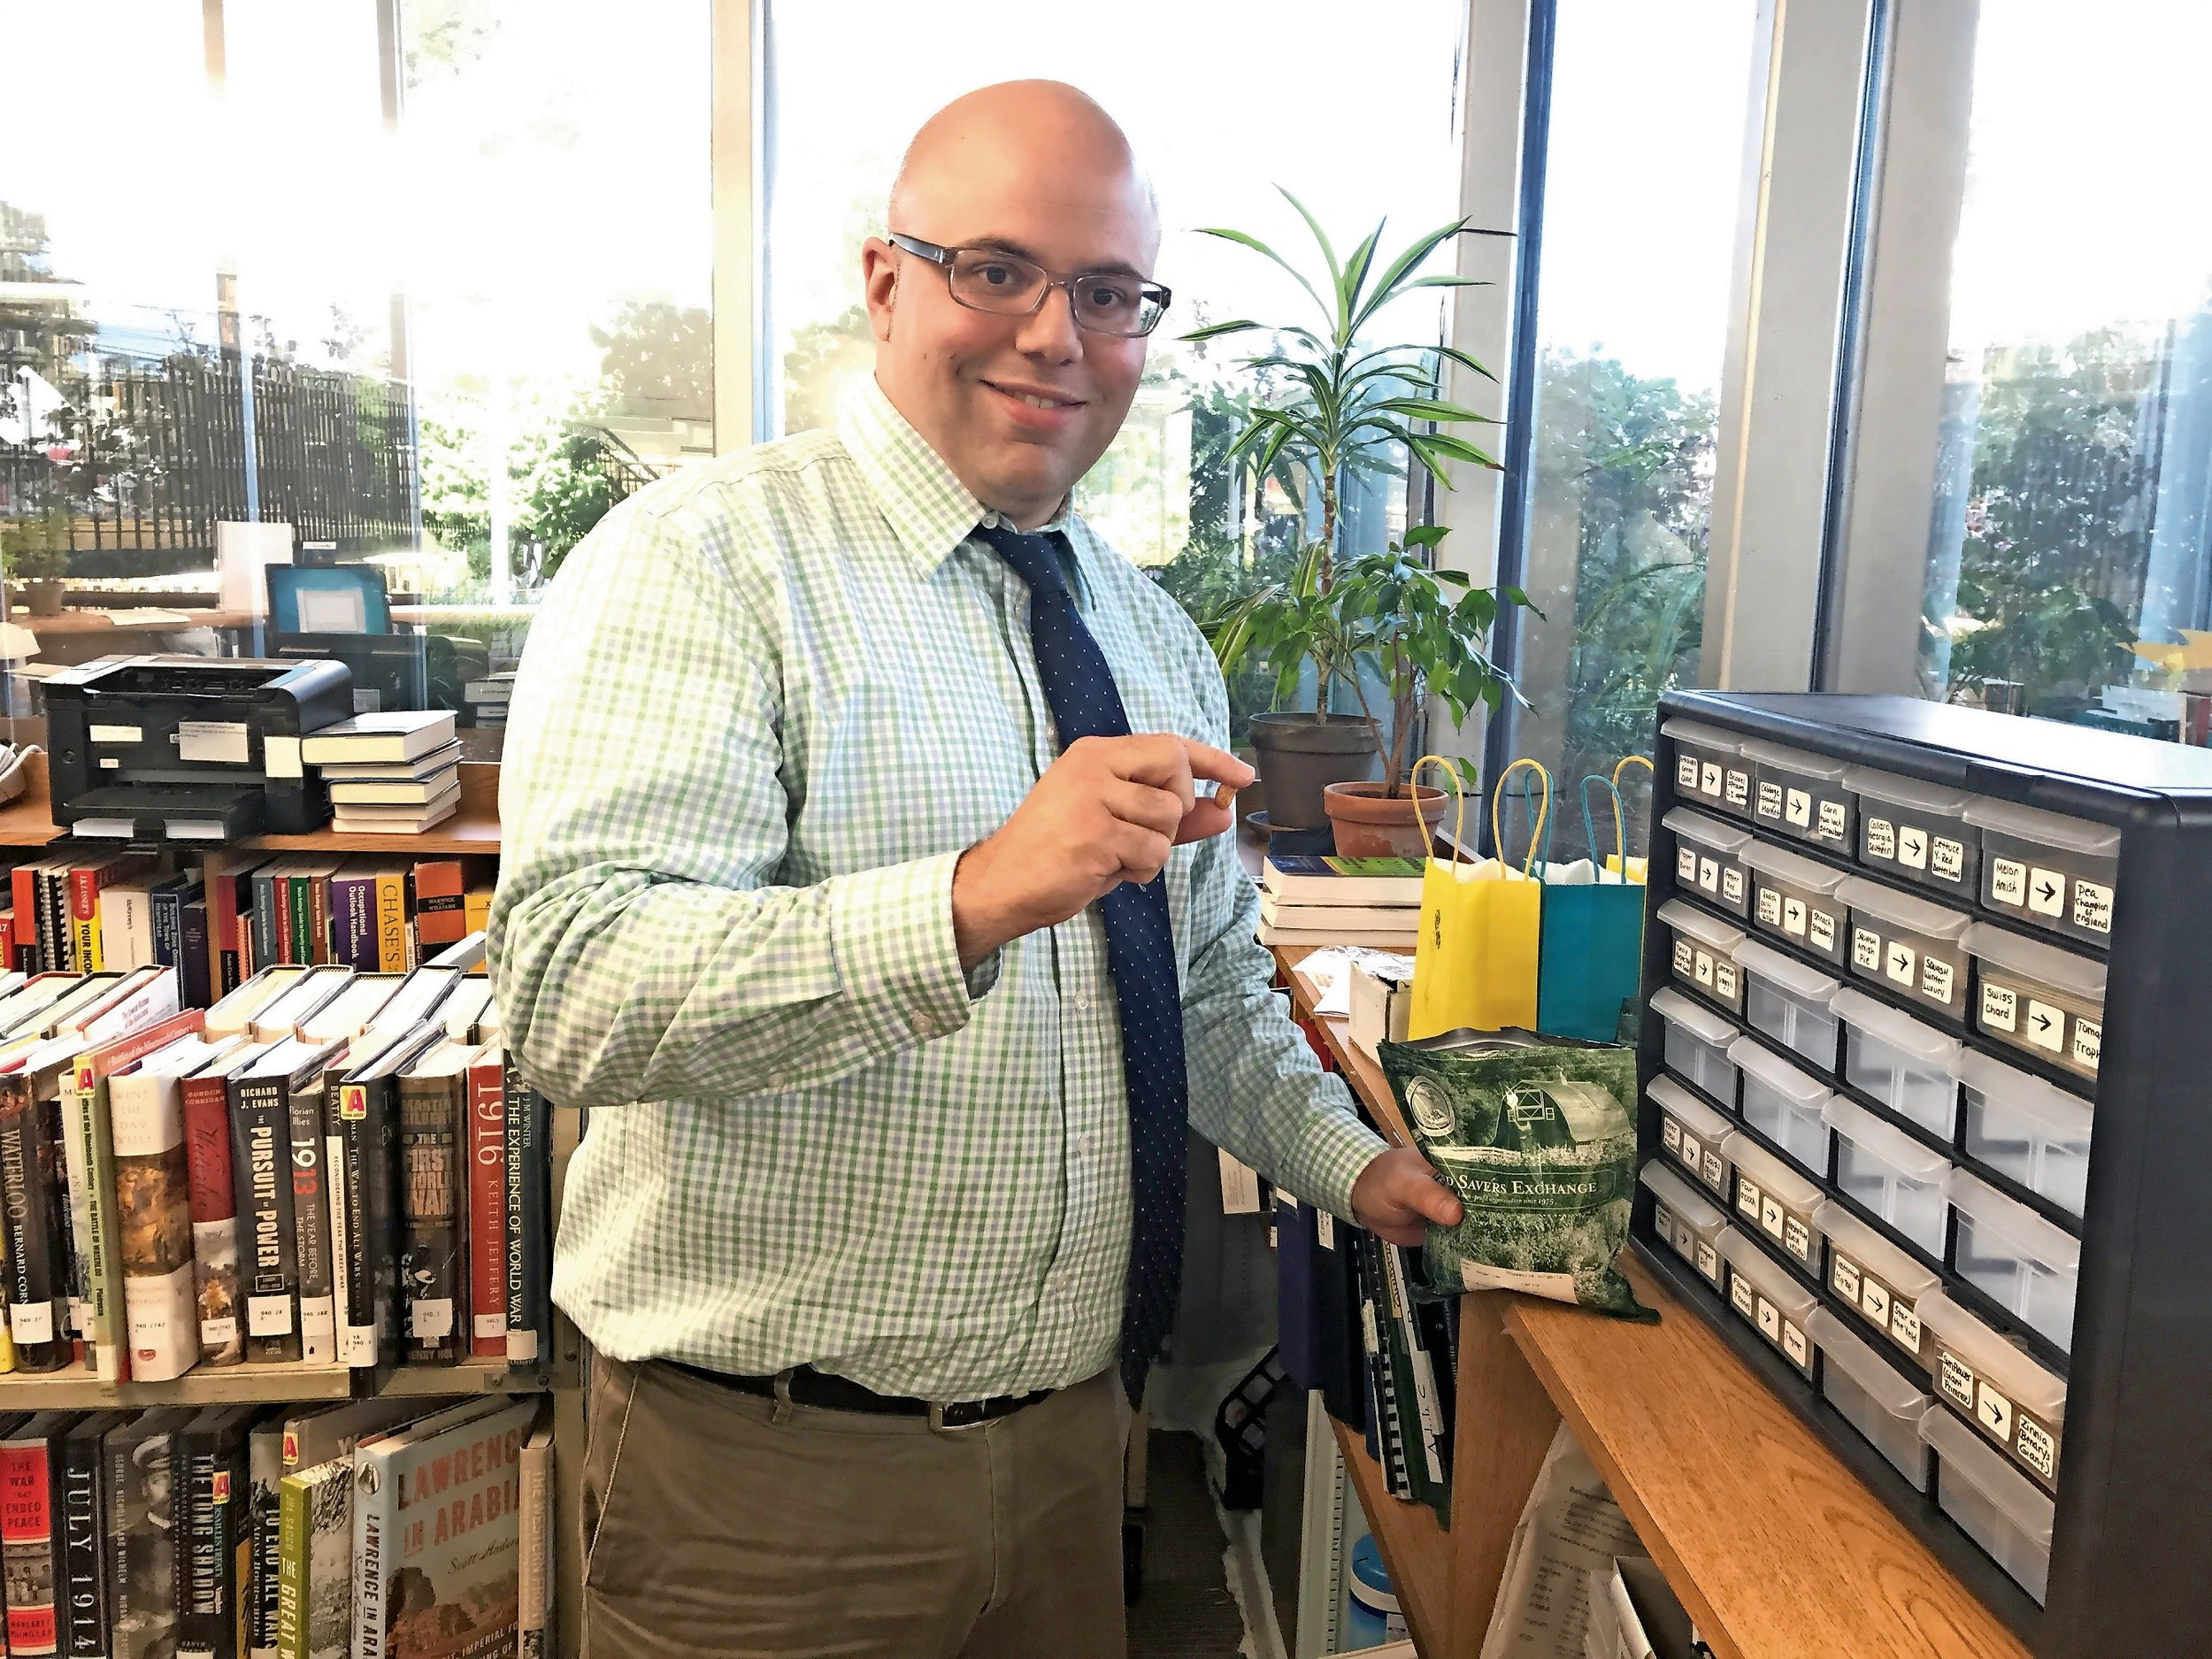 Ian Smith, head of reference, developed the seed library in Wantagh.